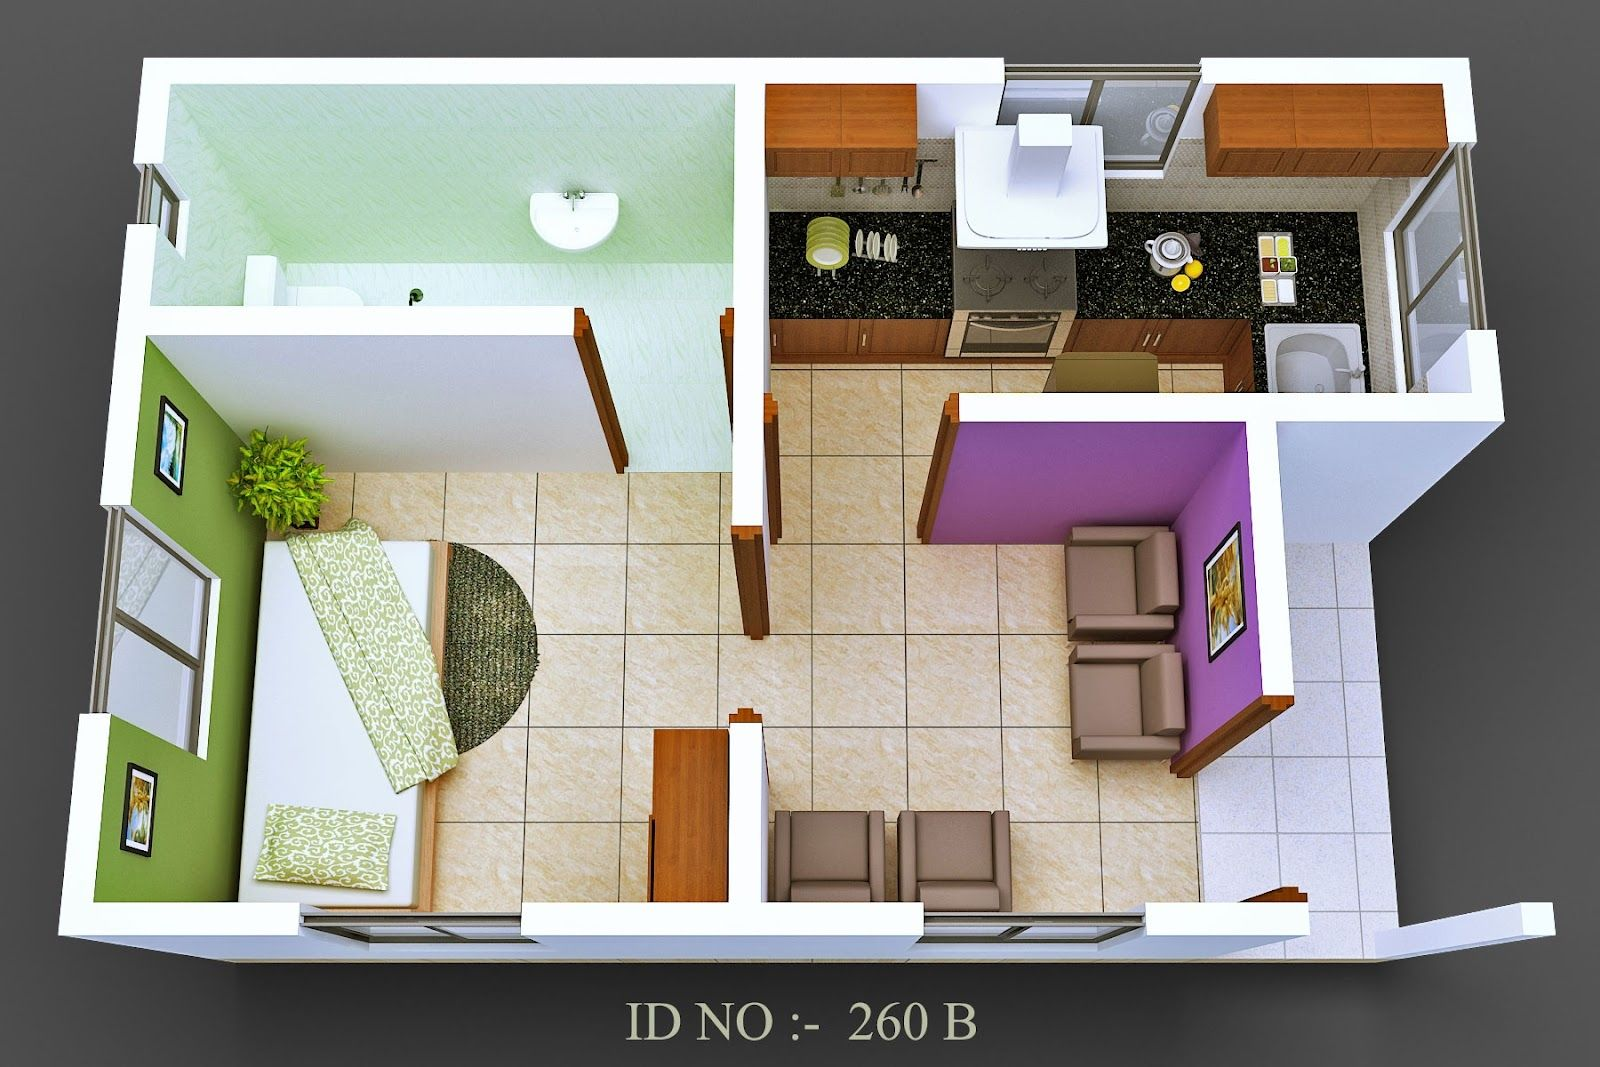 Interior Design House Games Online Free Small House Design Small House Blueprints Small House Plans